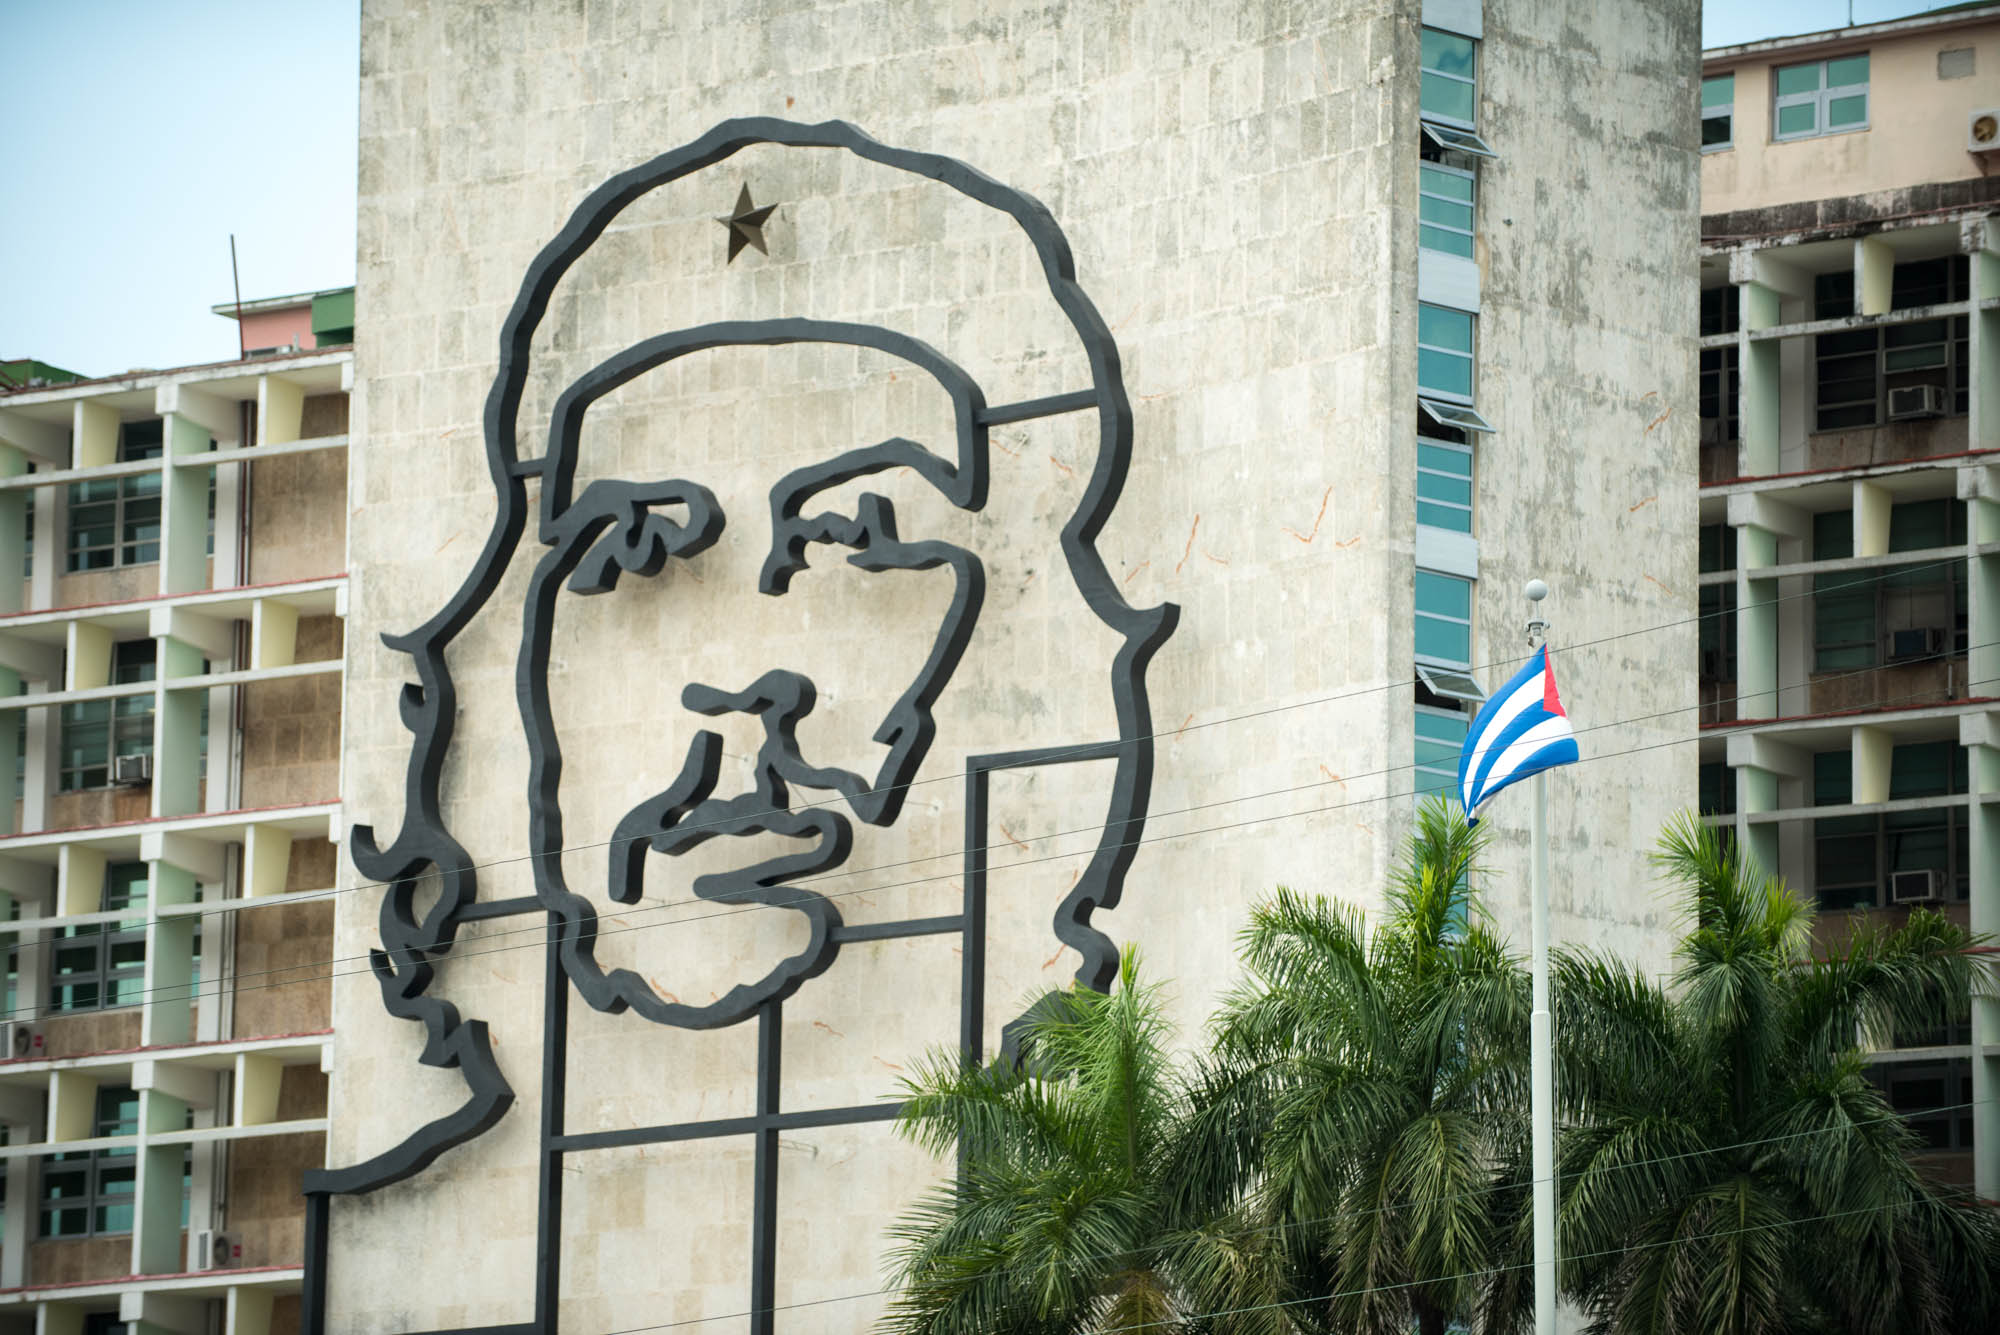 Che Guevara sculpture on building edifice. MPR photo by Nate Ryan